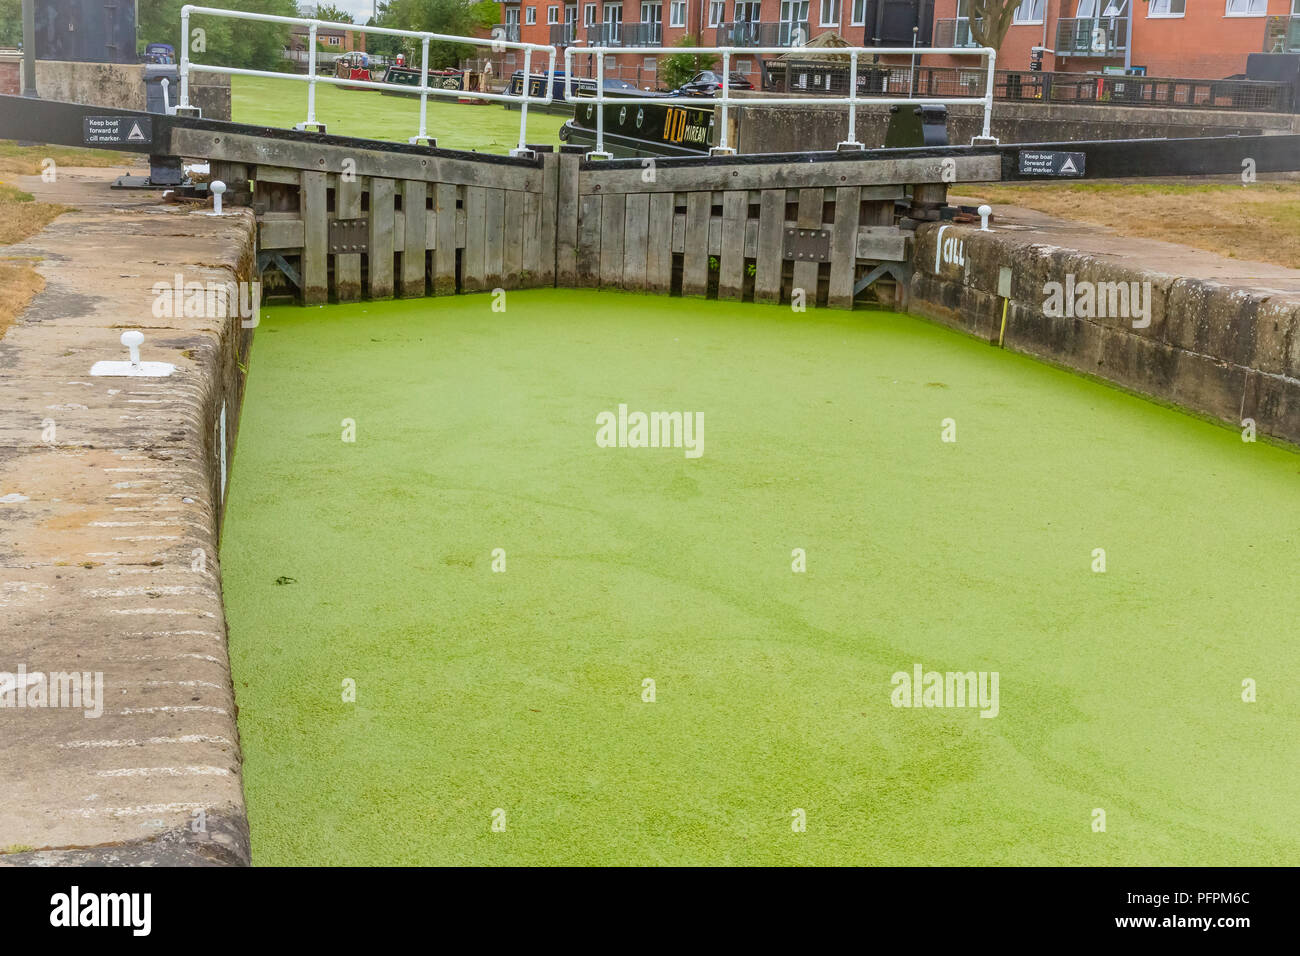 Selby canal and lock in North Yorkshire, UK covered in thick, green algae, pondweed and duckweed causing problems to wildlife and boaters. Horizontal - Stock Image